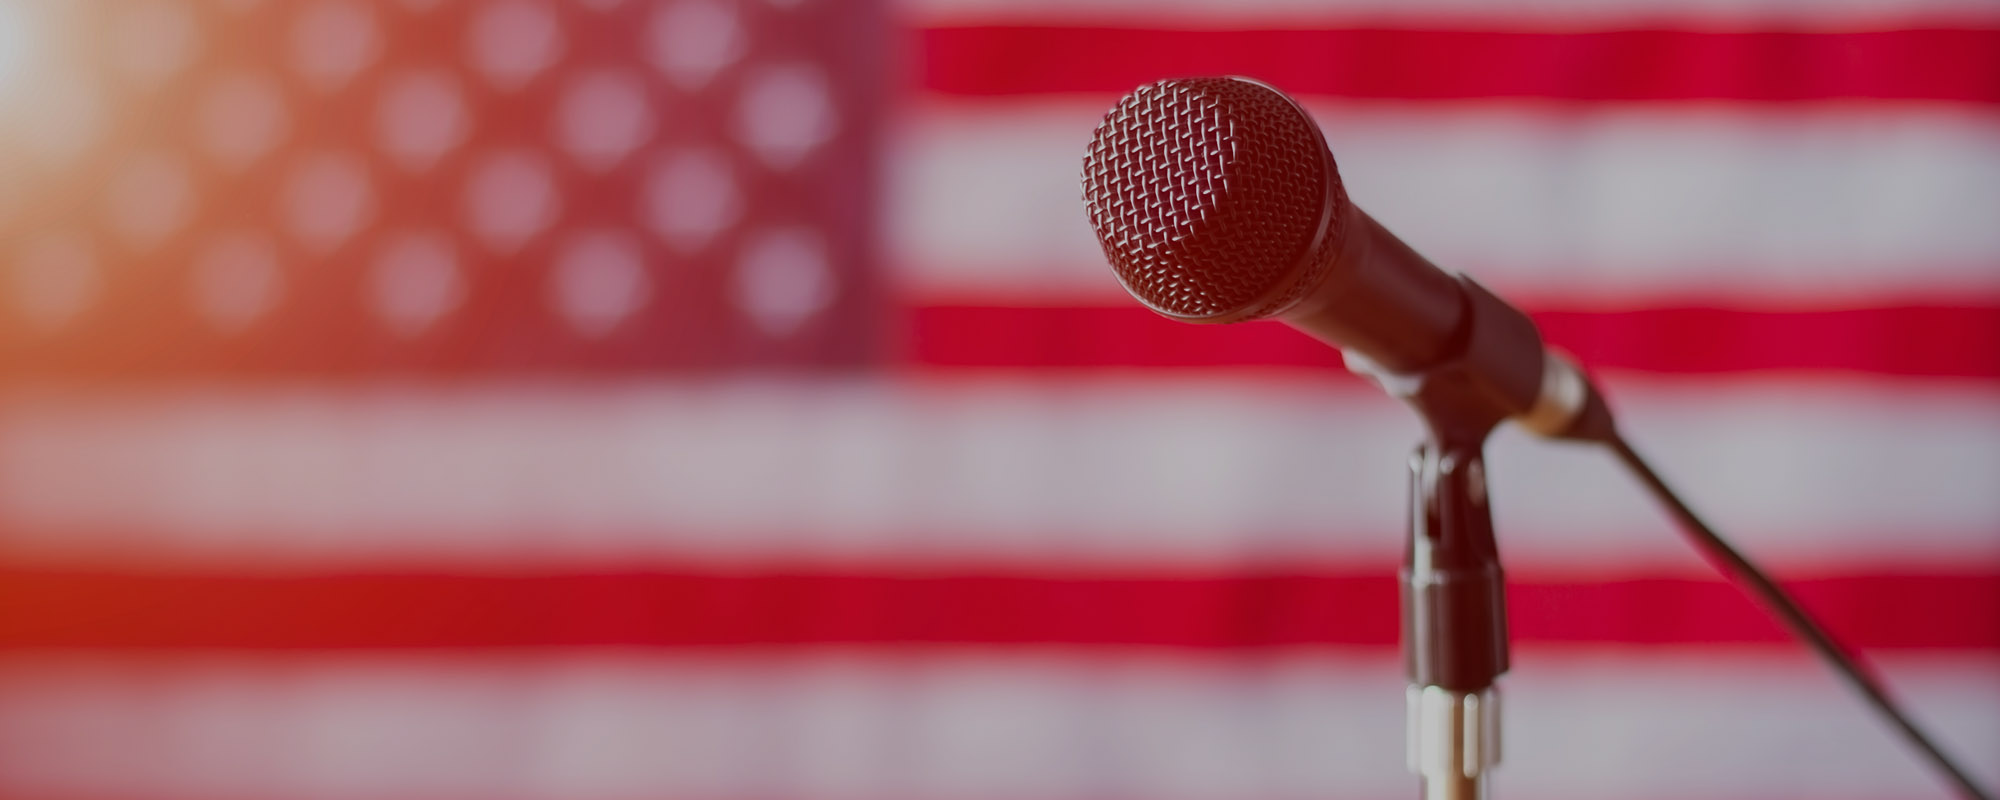 Microphone on US flag background.